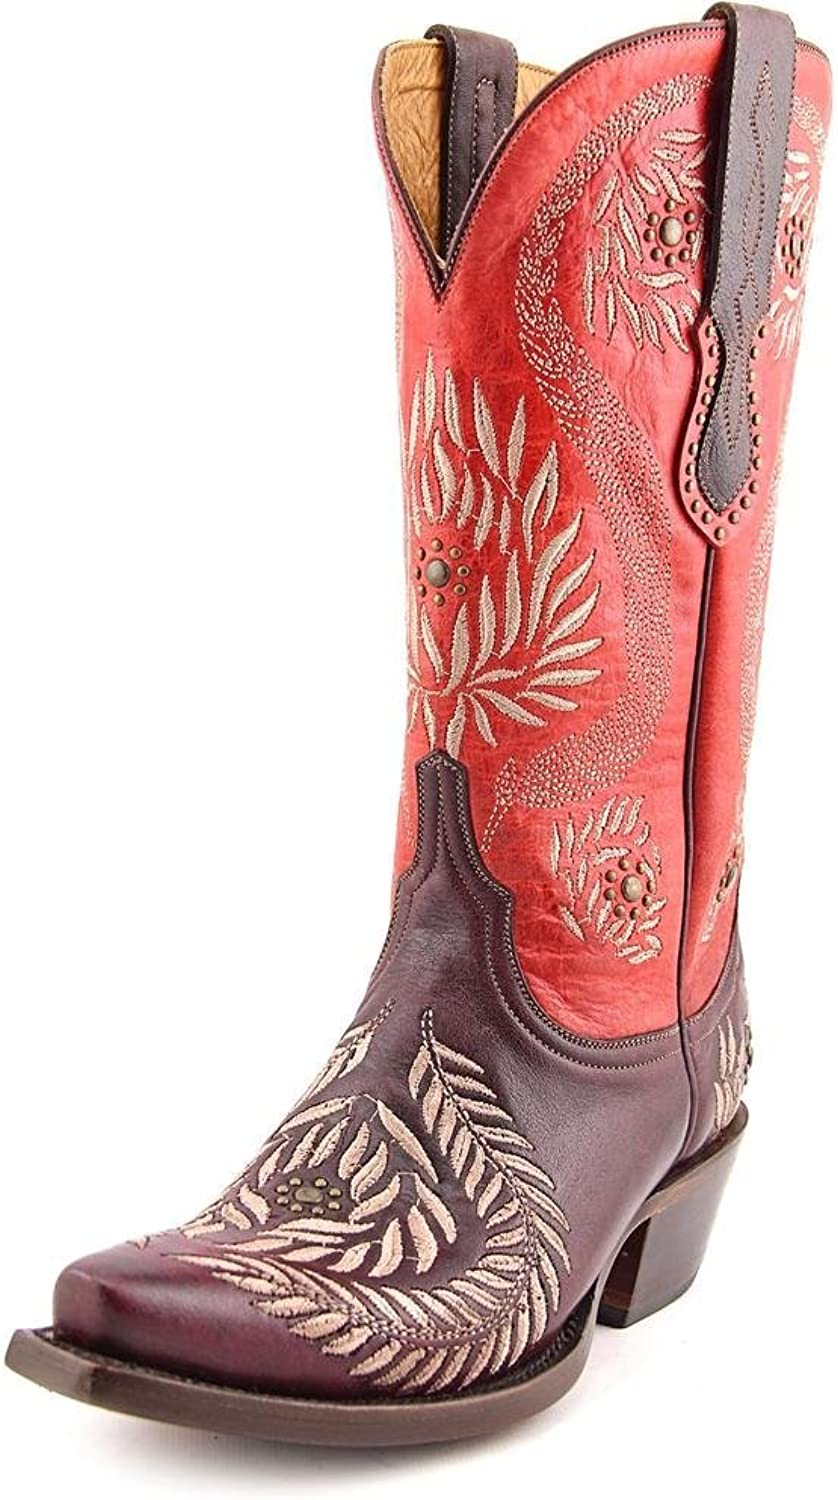 Lucchese Women's M4837.S5 Cowboy Boots - Snip Toe red